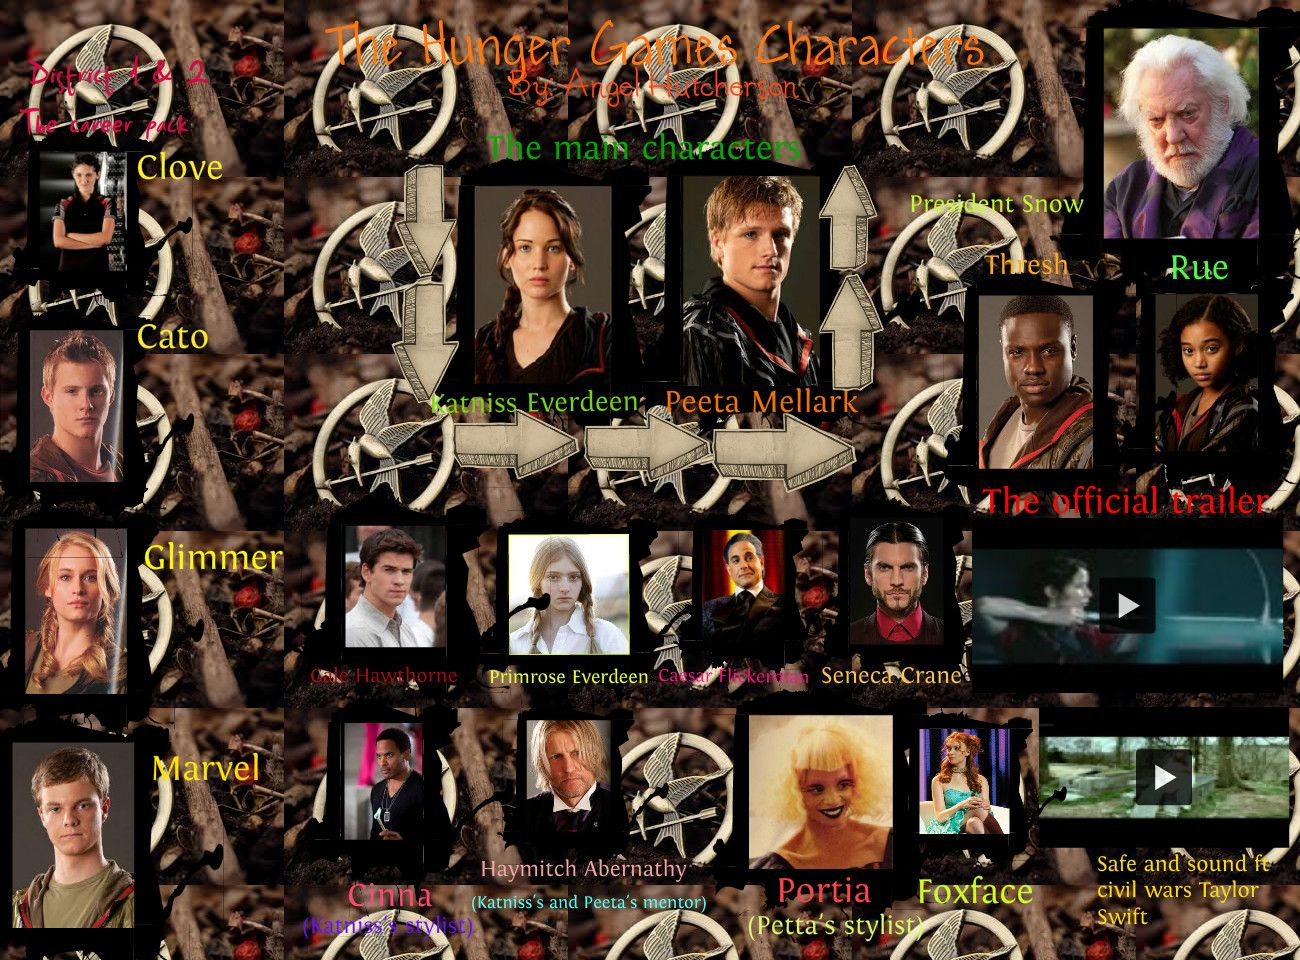 """character analysis of the main characters in the hunger games The character that i felt strongly about from suzanne collins' hit novel """"the hunger games  the hunger games character  the main value that made me."""